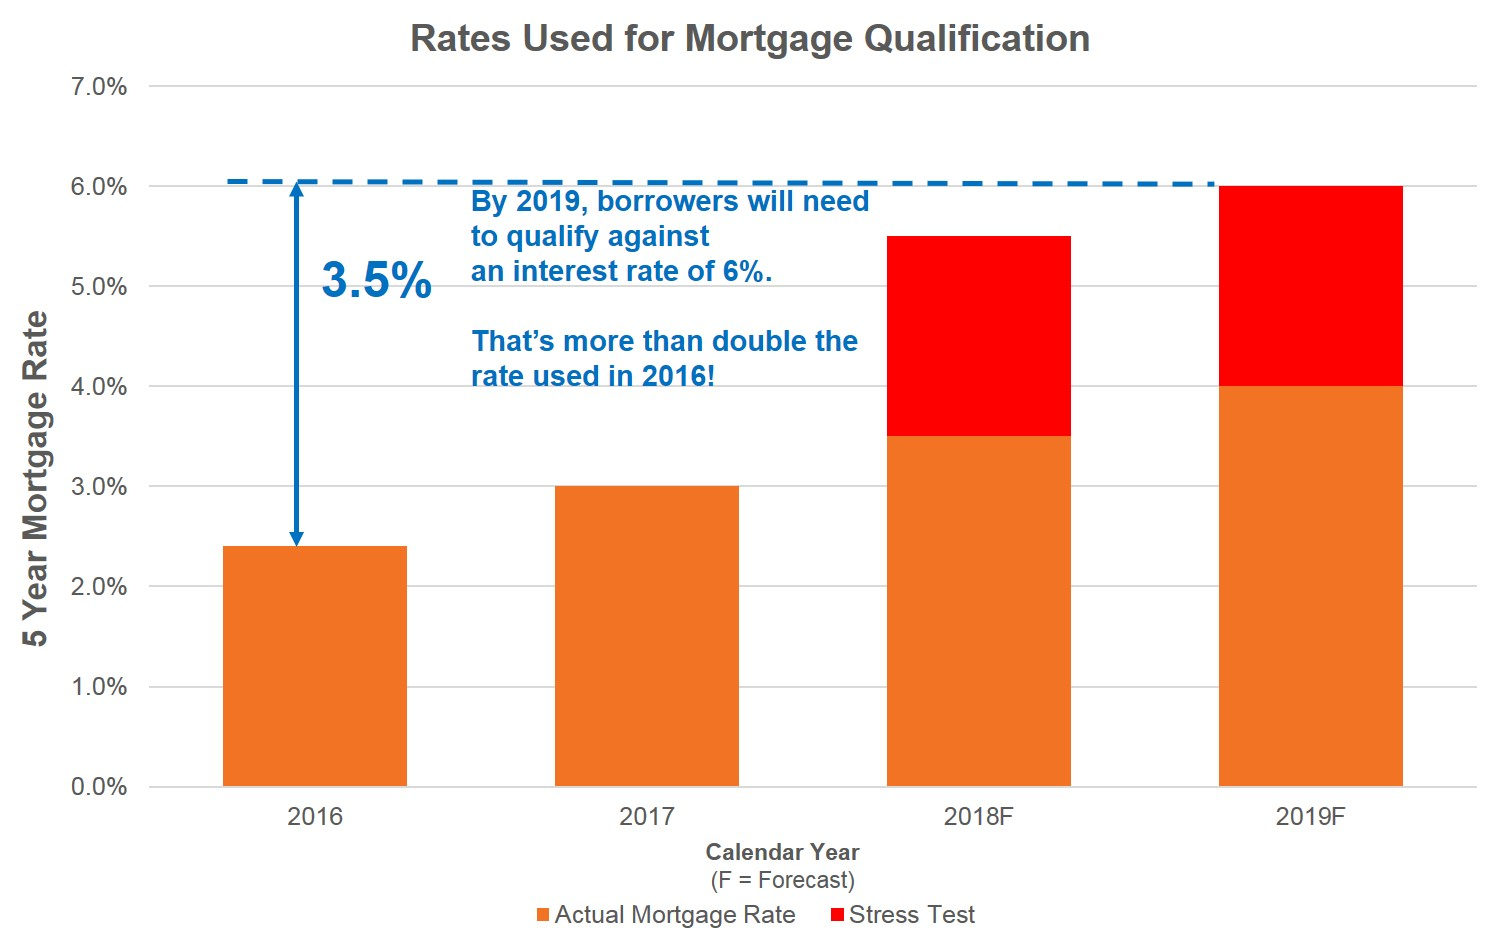 By 2019, home buyers must show they can support a mortgage with a 5-year rate of 6%.